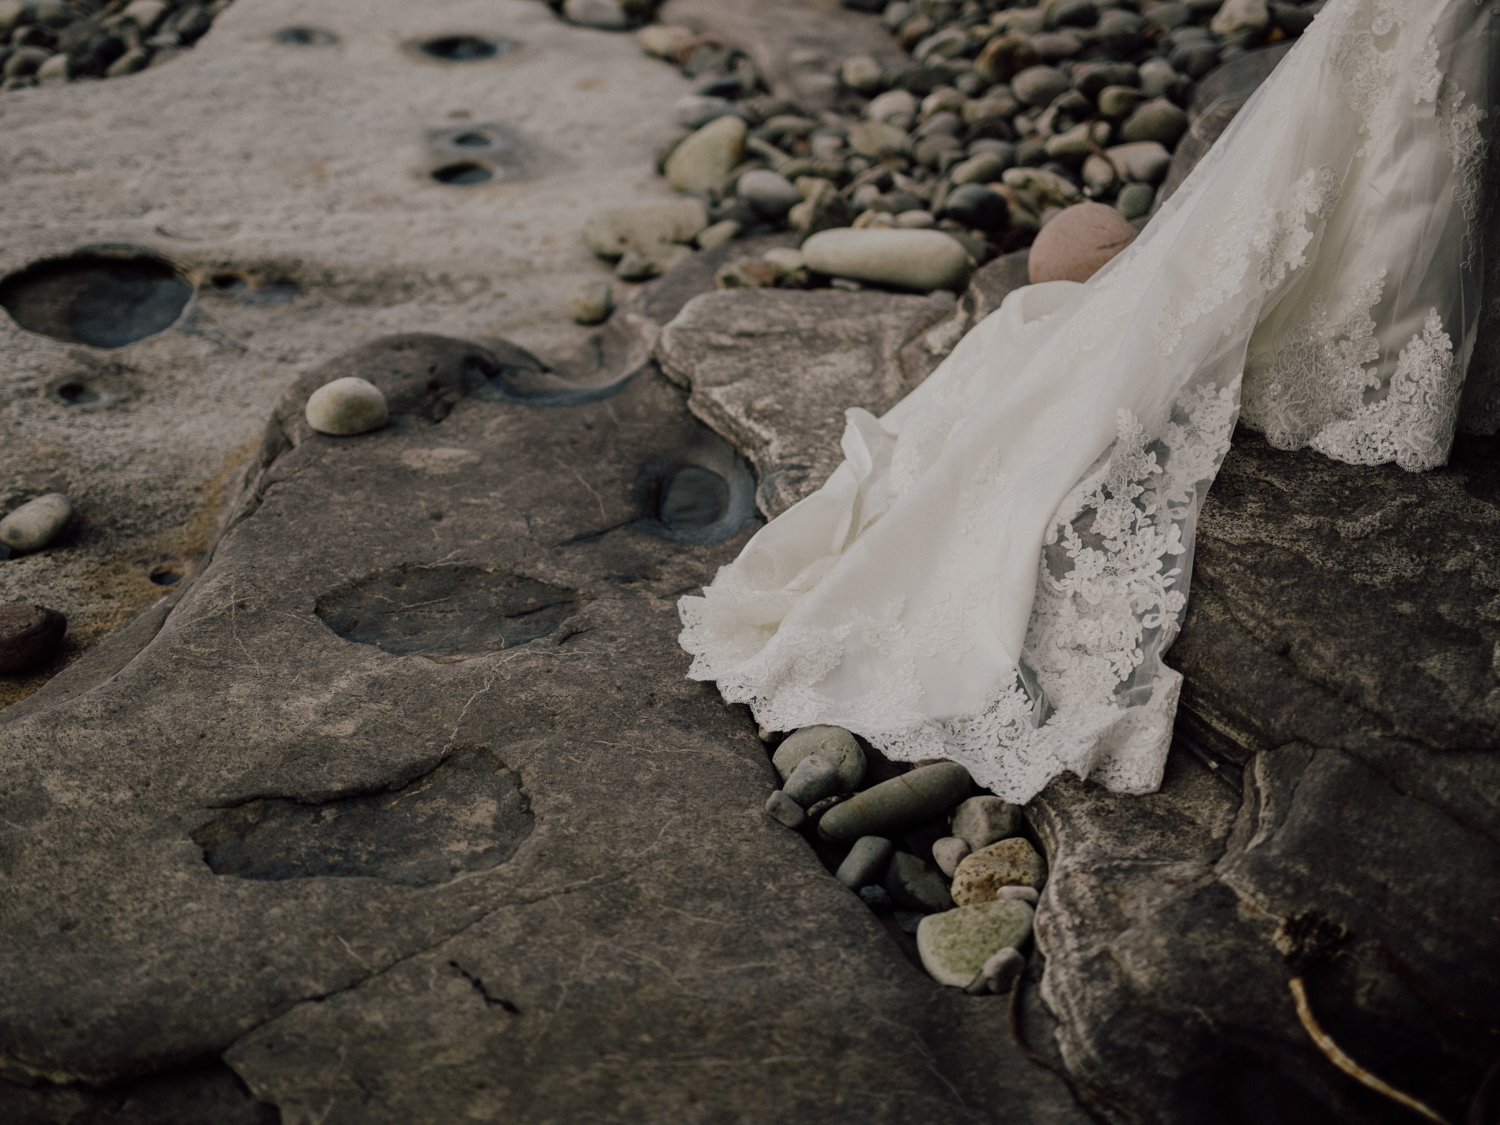 capyture-wedding-photographer-destination-elopement-isle-skye-scotland-156